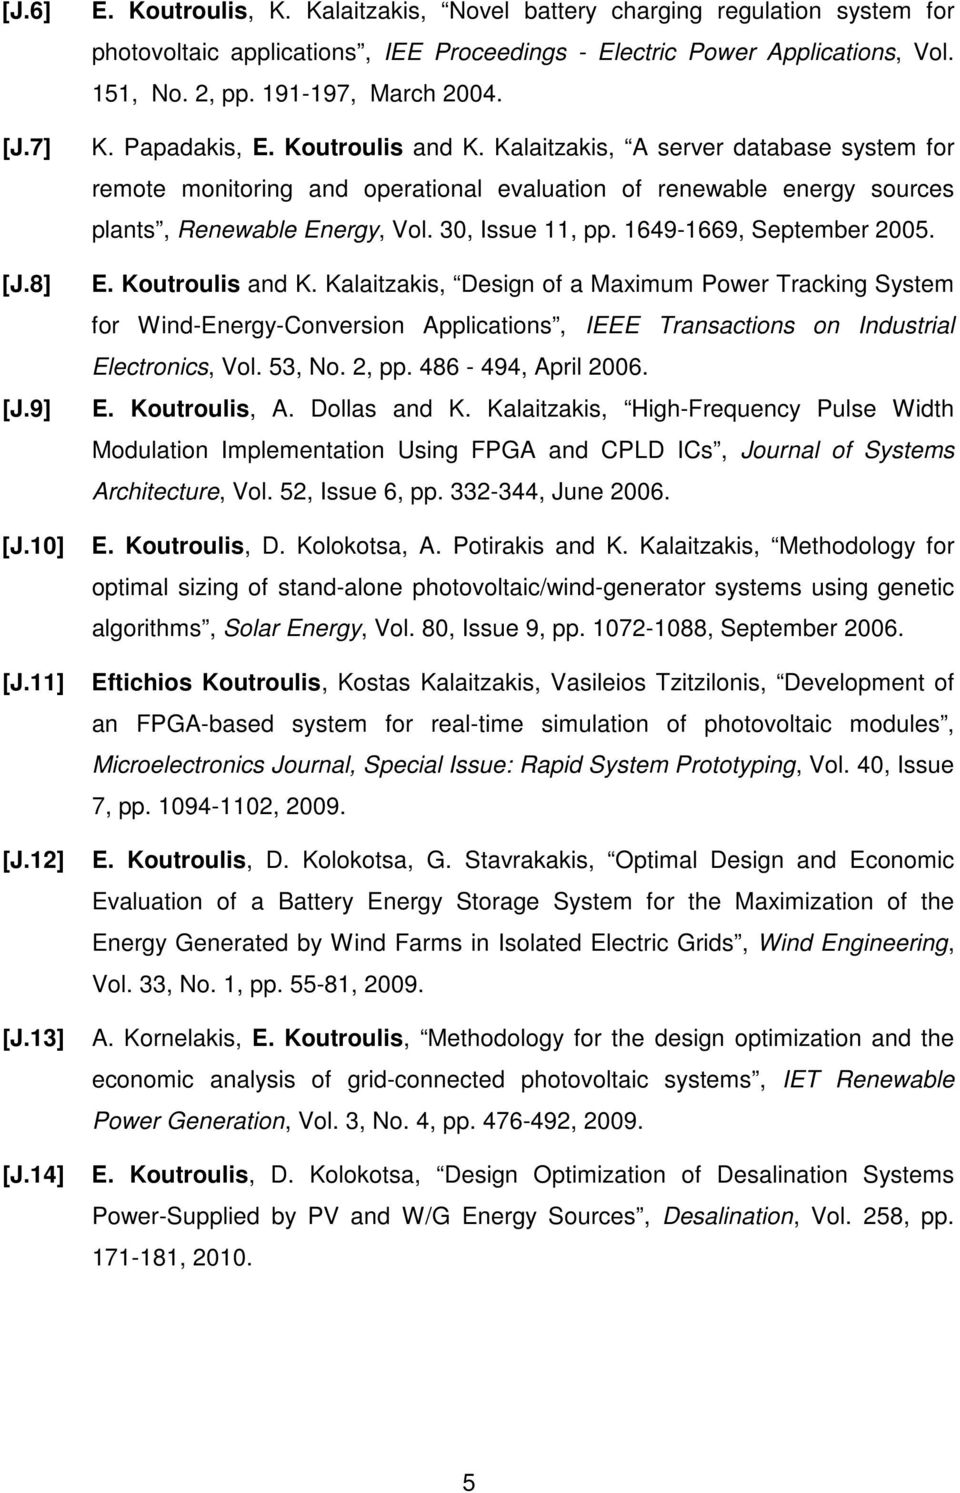 Koutroulis and K. Kalaitzakis, A server database system for remote monitoring and operational evaluation of renewable energy sources plants, Renewable Energy, Vol. 30, Issue 11, pp.